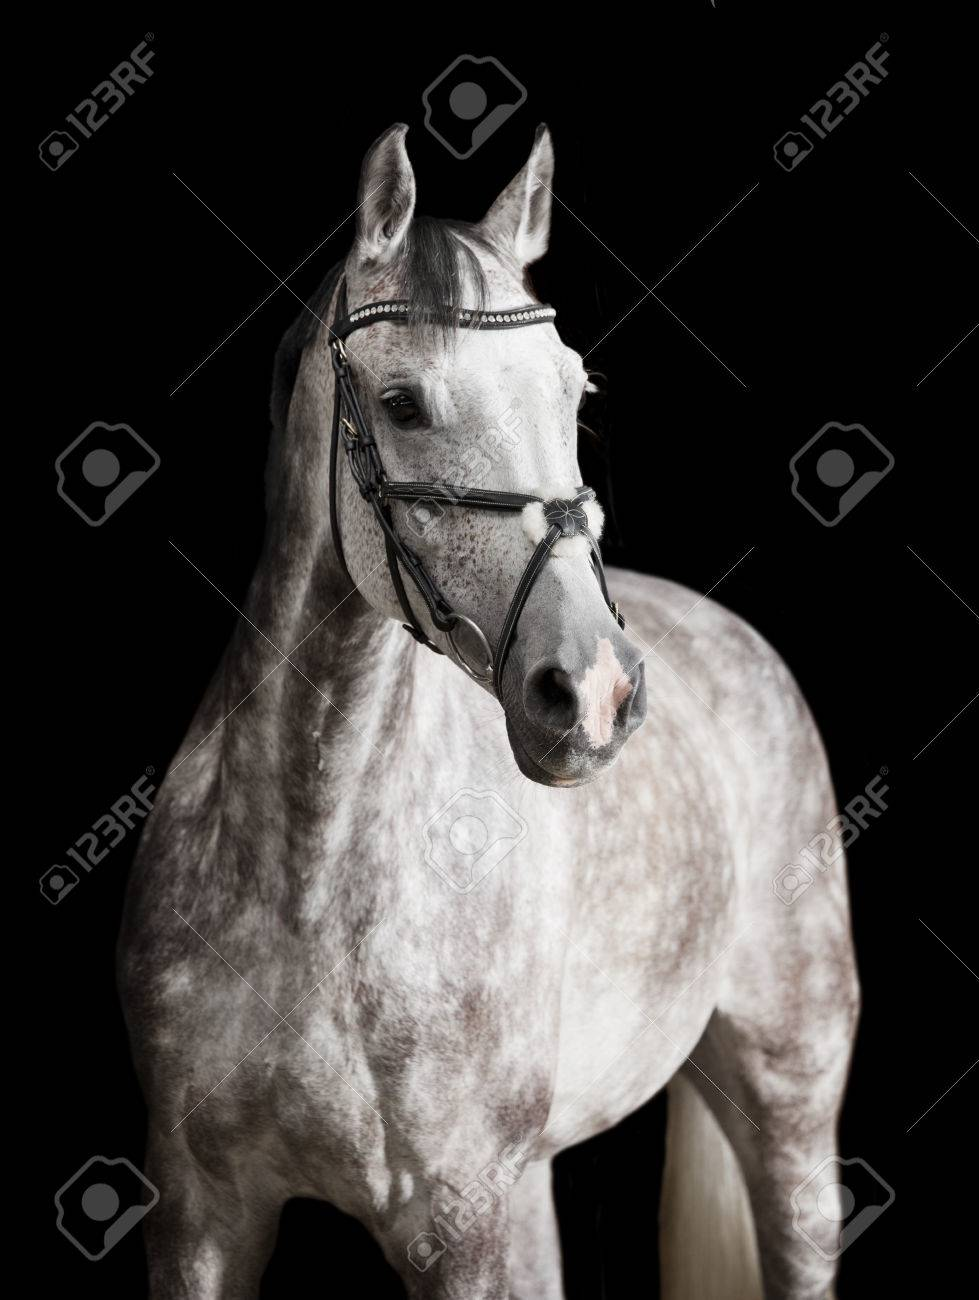 A White Horse With Bridle Against Black Background Stock Photo Picture And Royalty Free Image Image 85084784